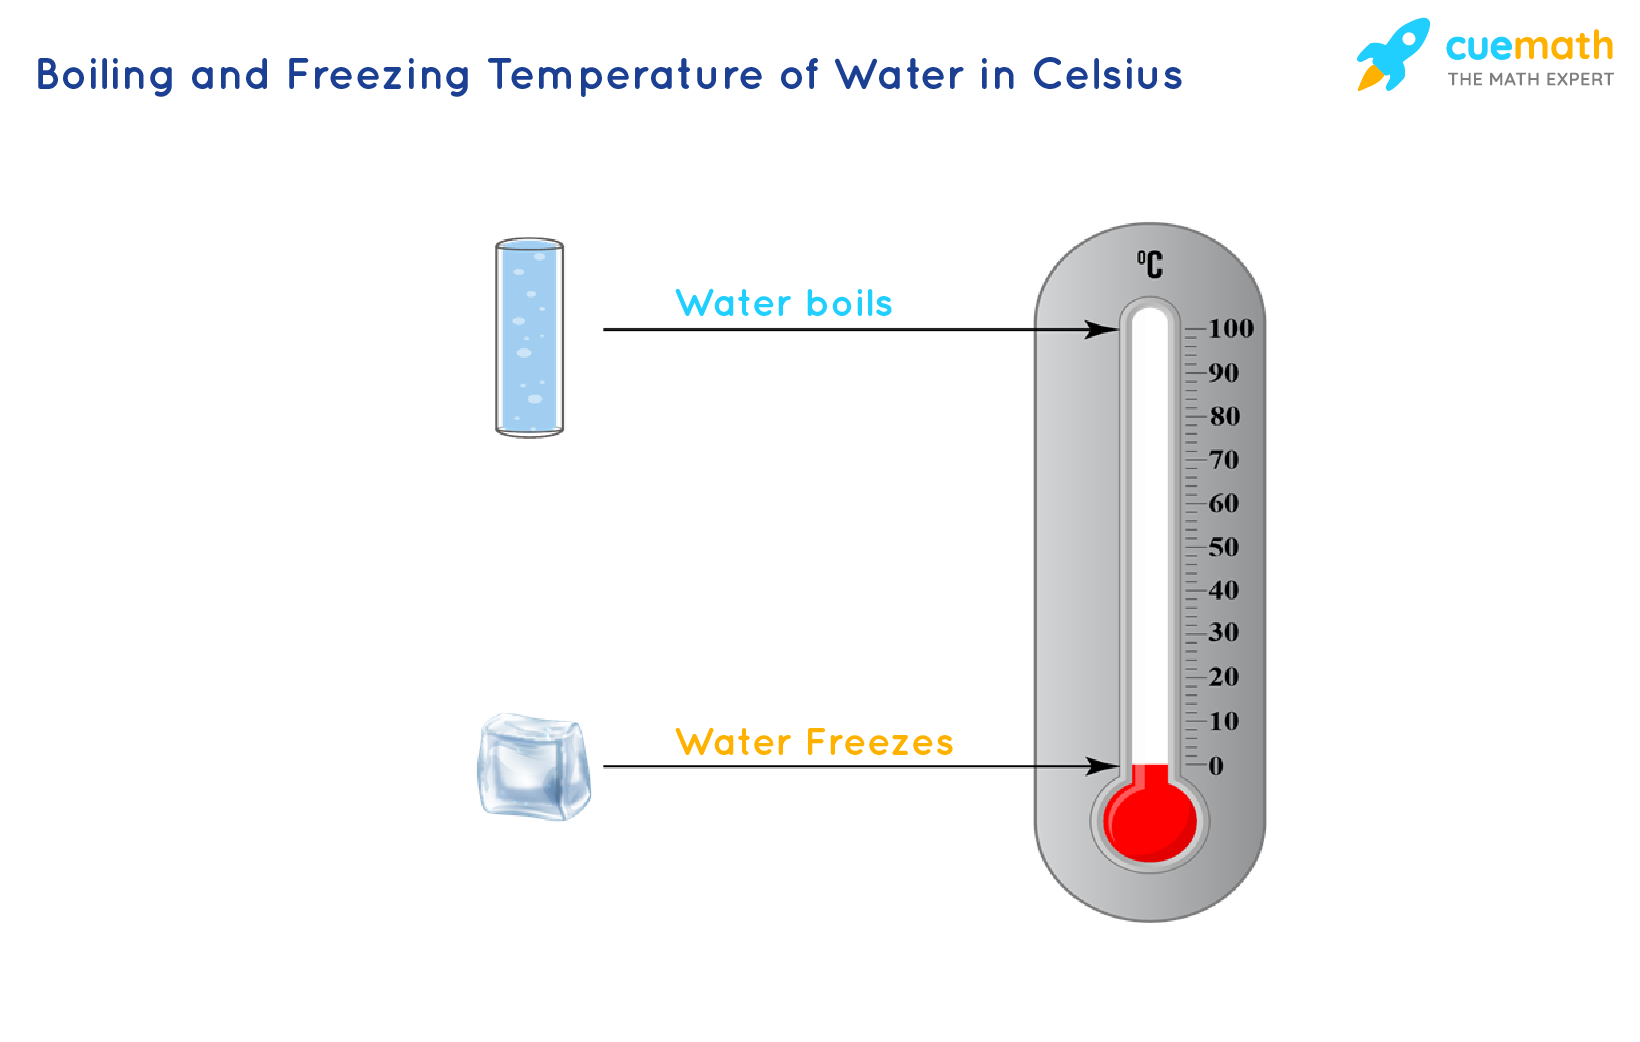 Celsius scale showing the temperature at which water boils and freezes.